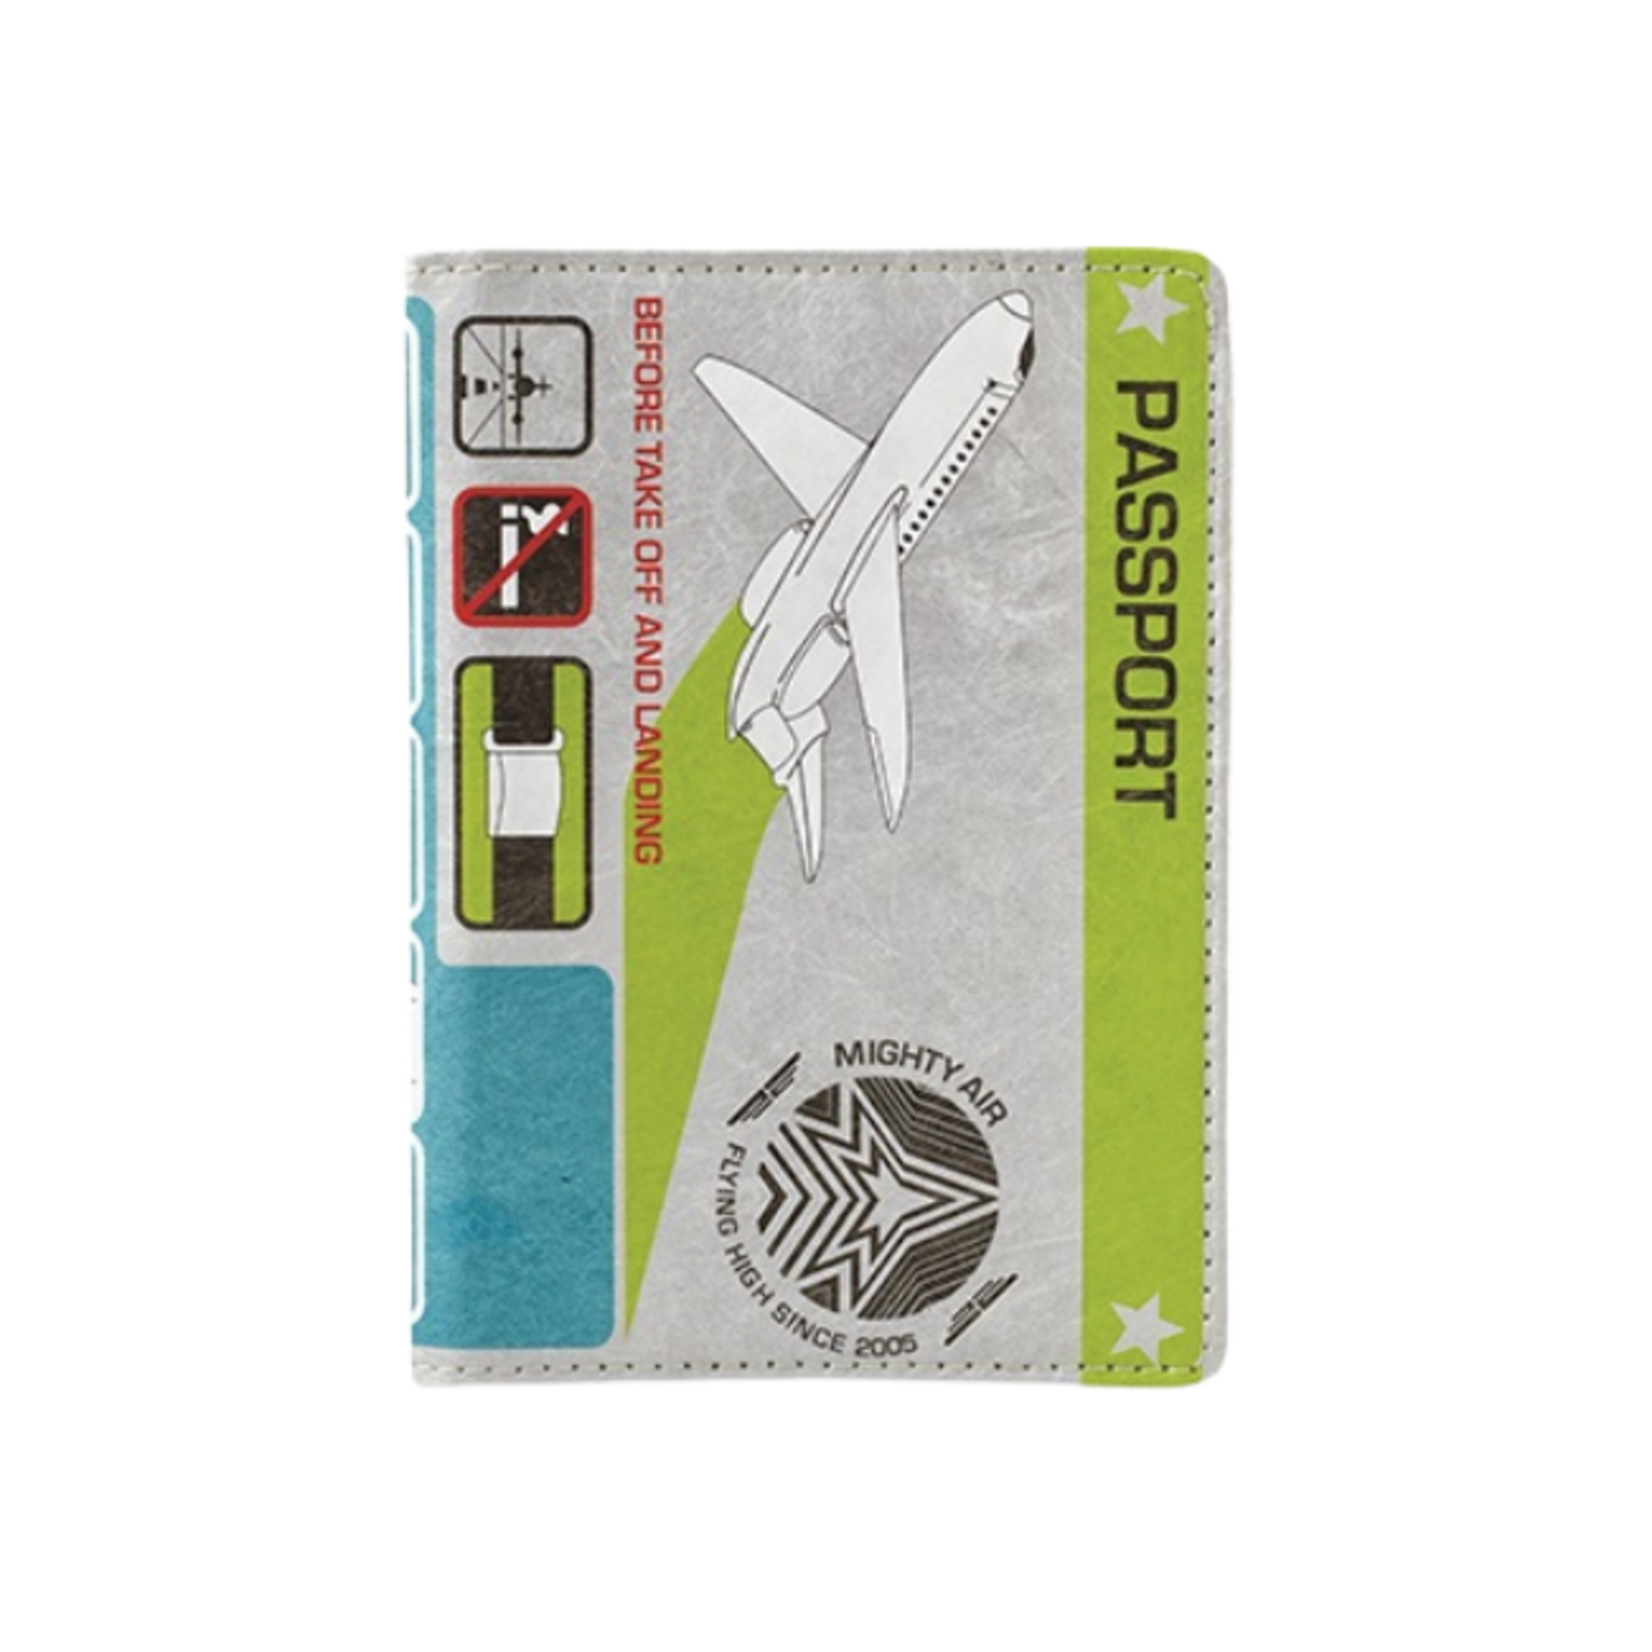 DYNOMIGHTY PASSPORT COVER